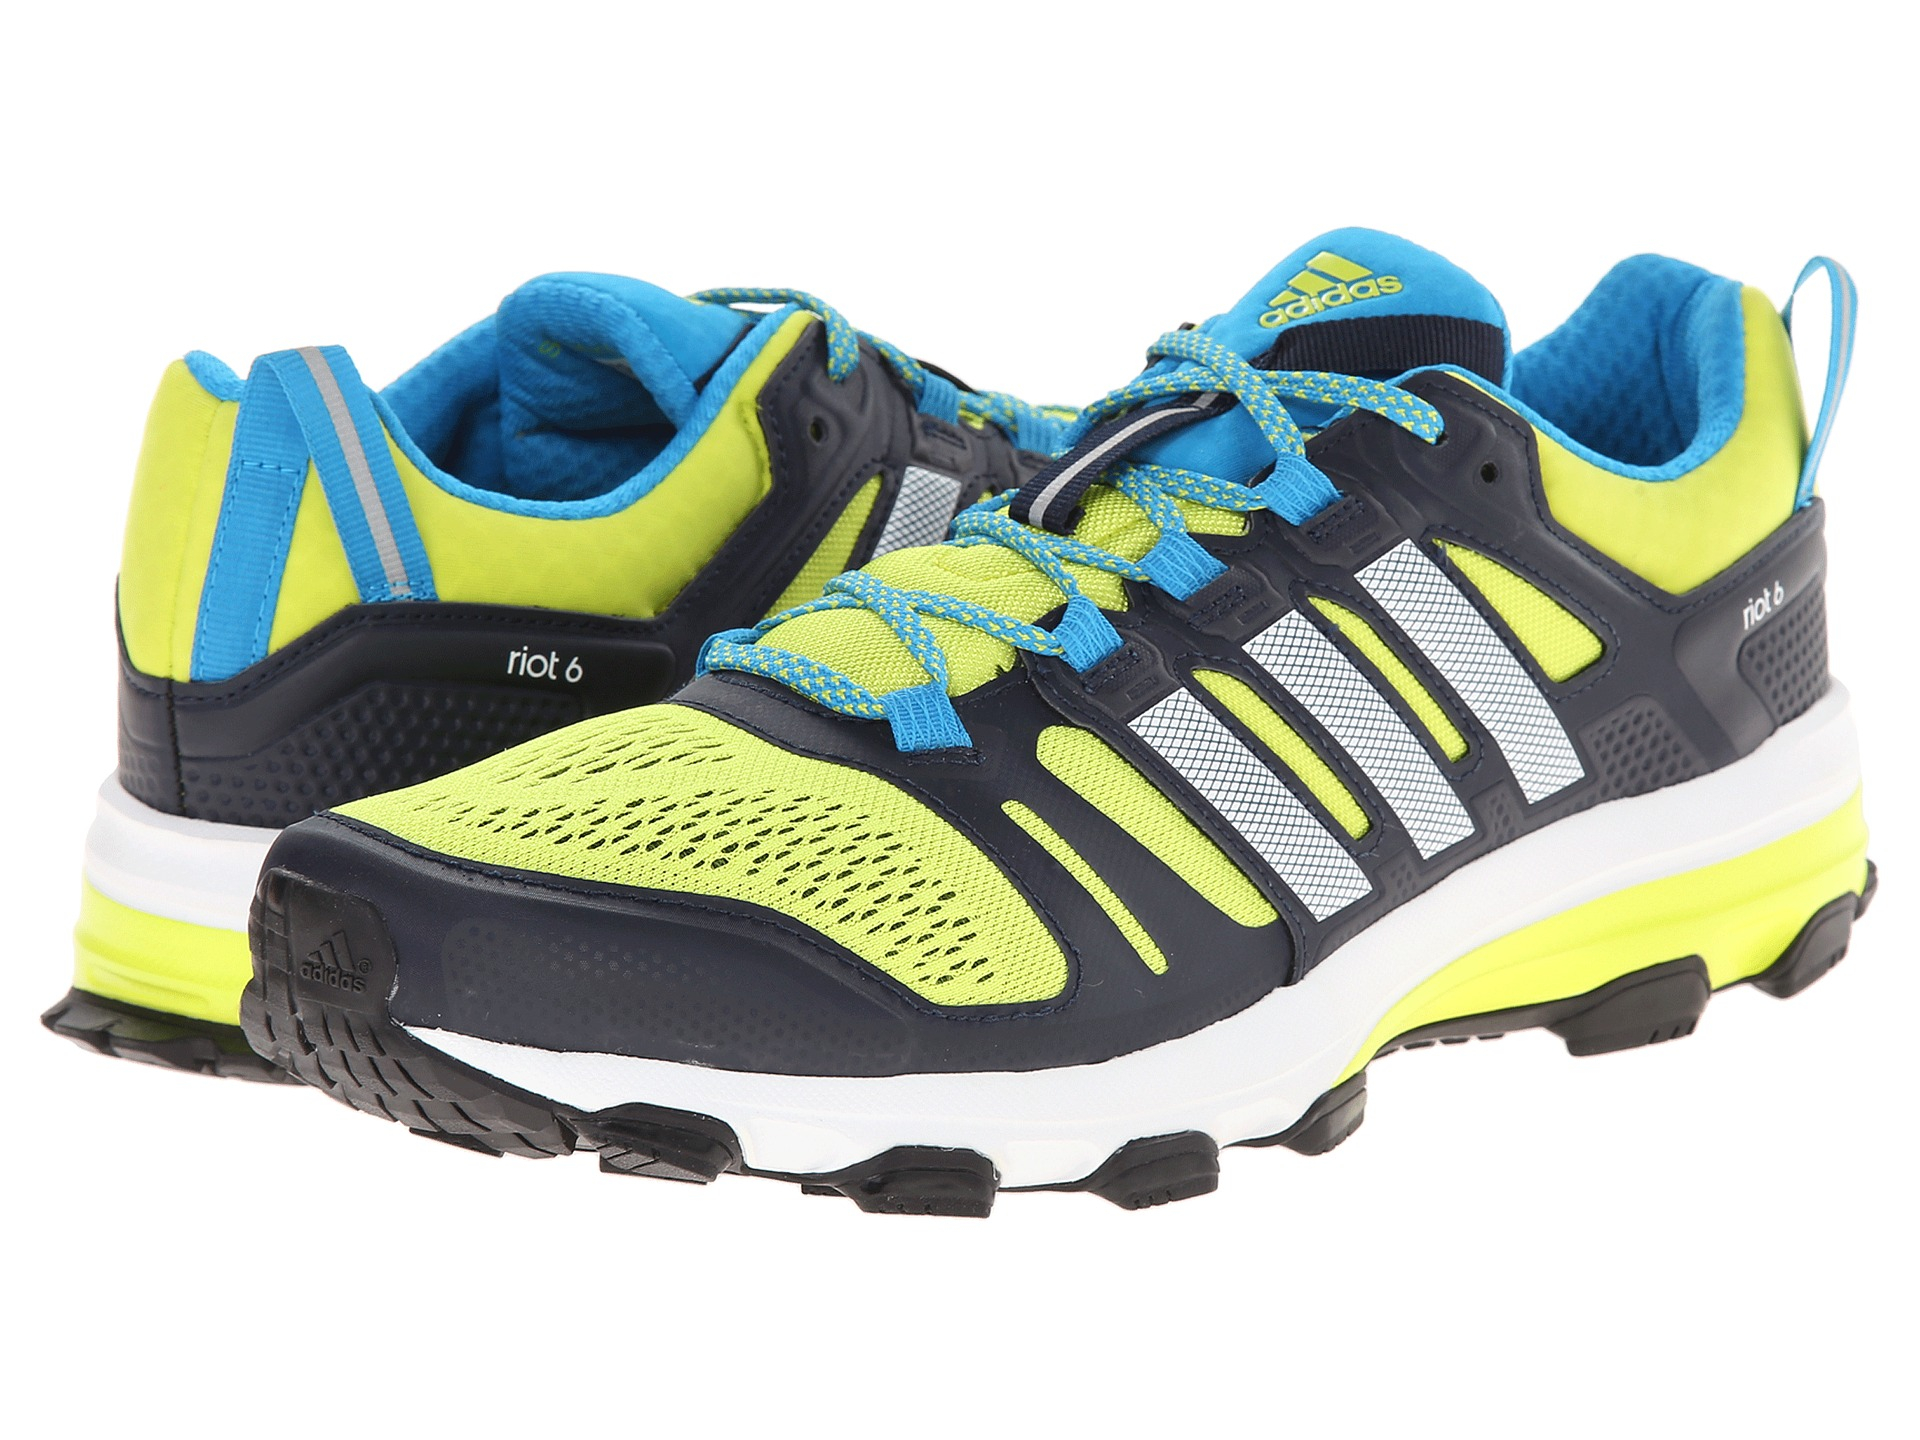 62c2bd426 Lyst - adidas Supernova Riot 6 in Blue for Men